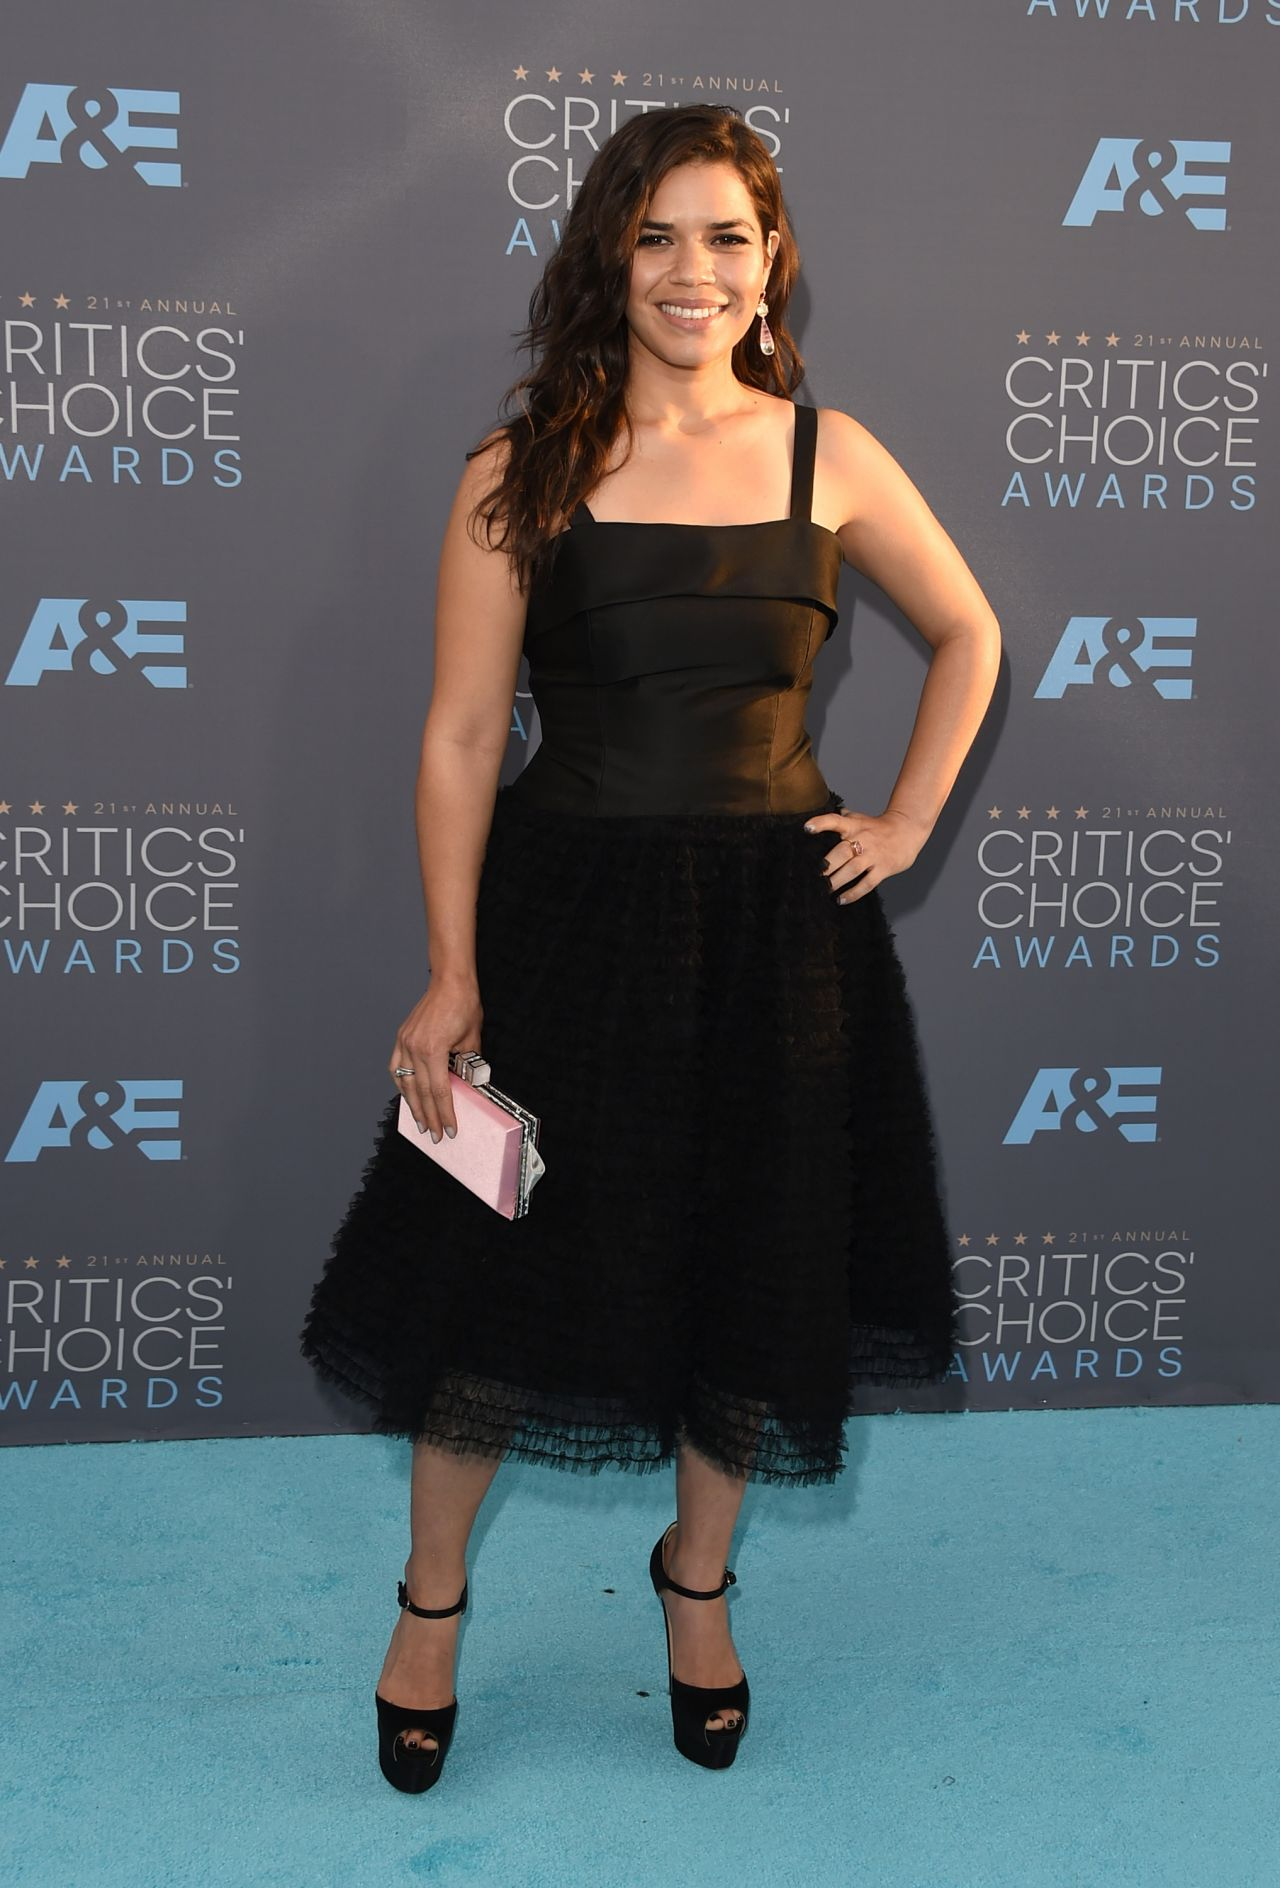 america-ferrera-2016-critics-choice-awards-in-santa-monica-2